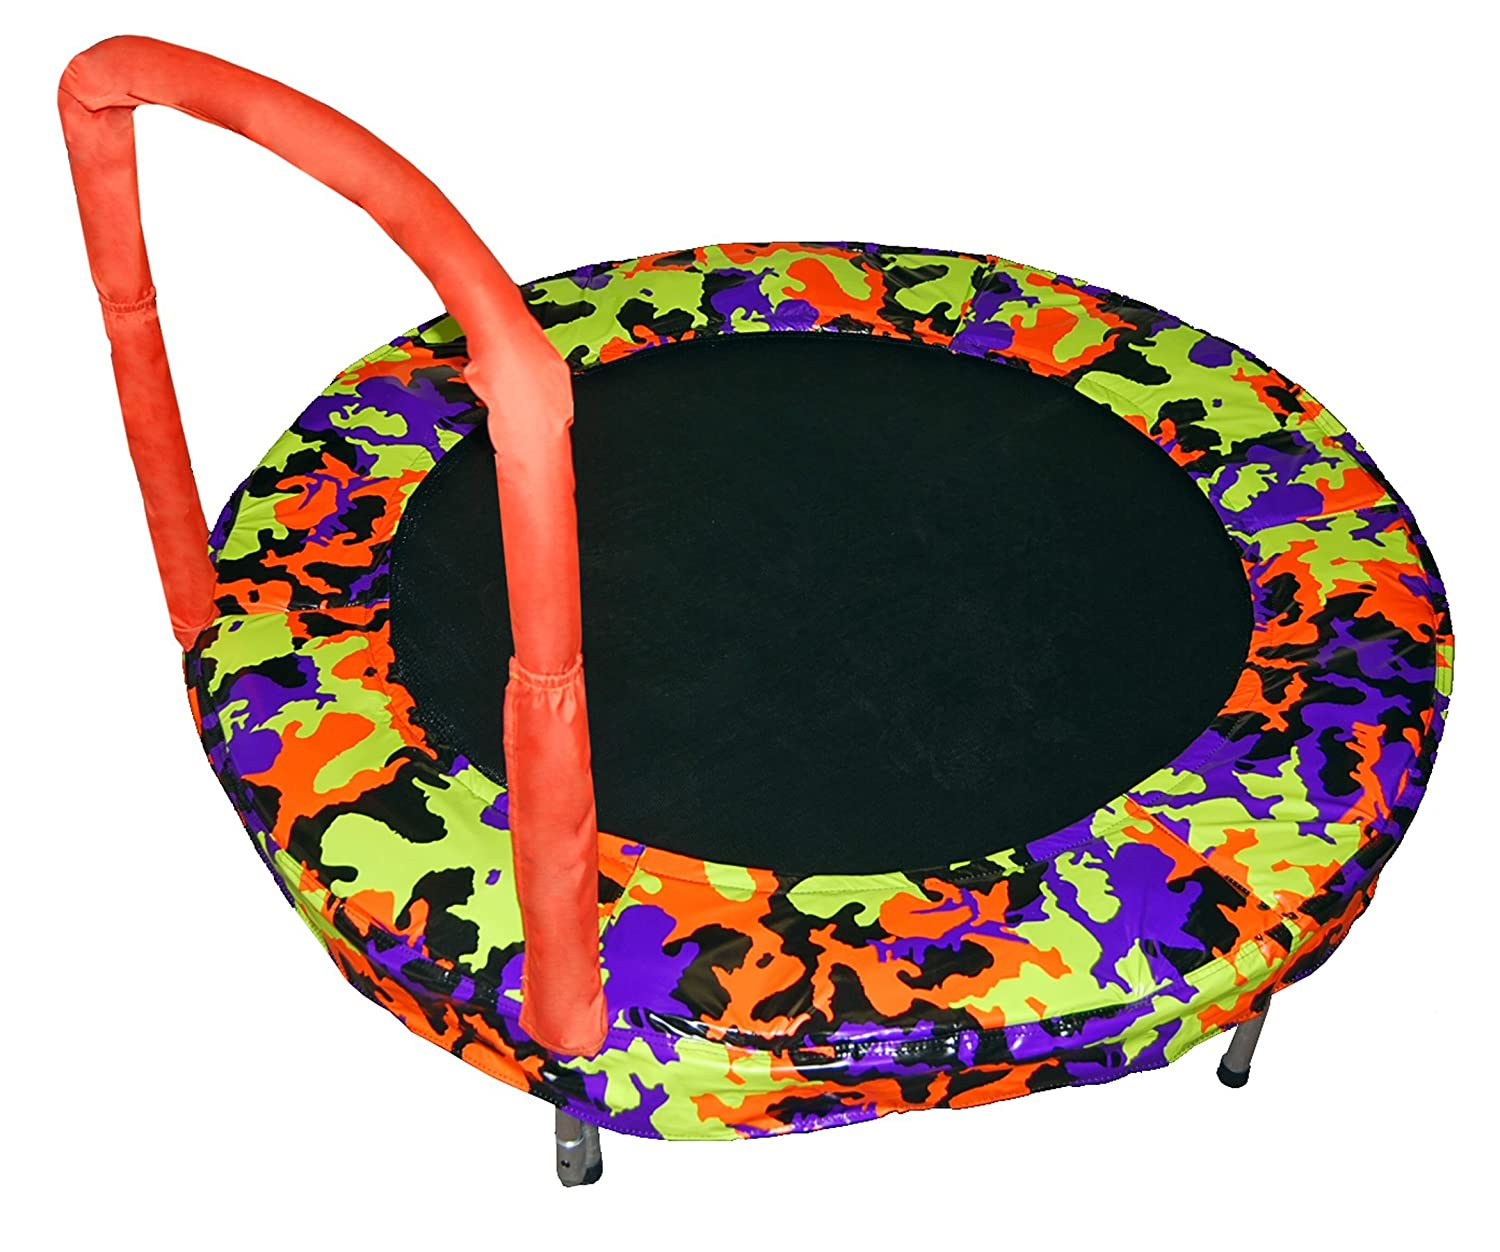 2. Bazoongi 48 inches Bouncer Trampoline